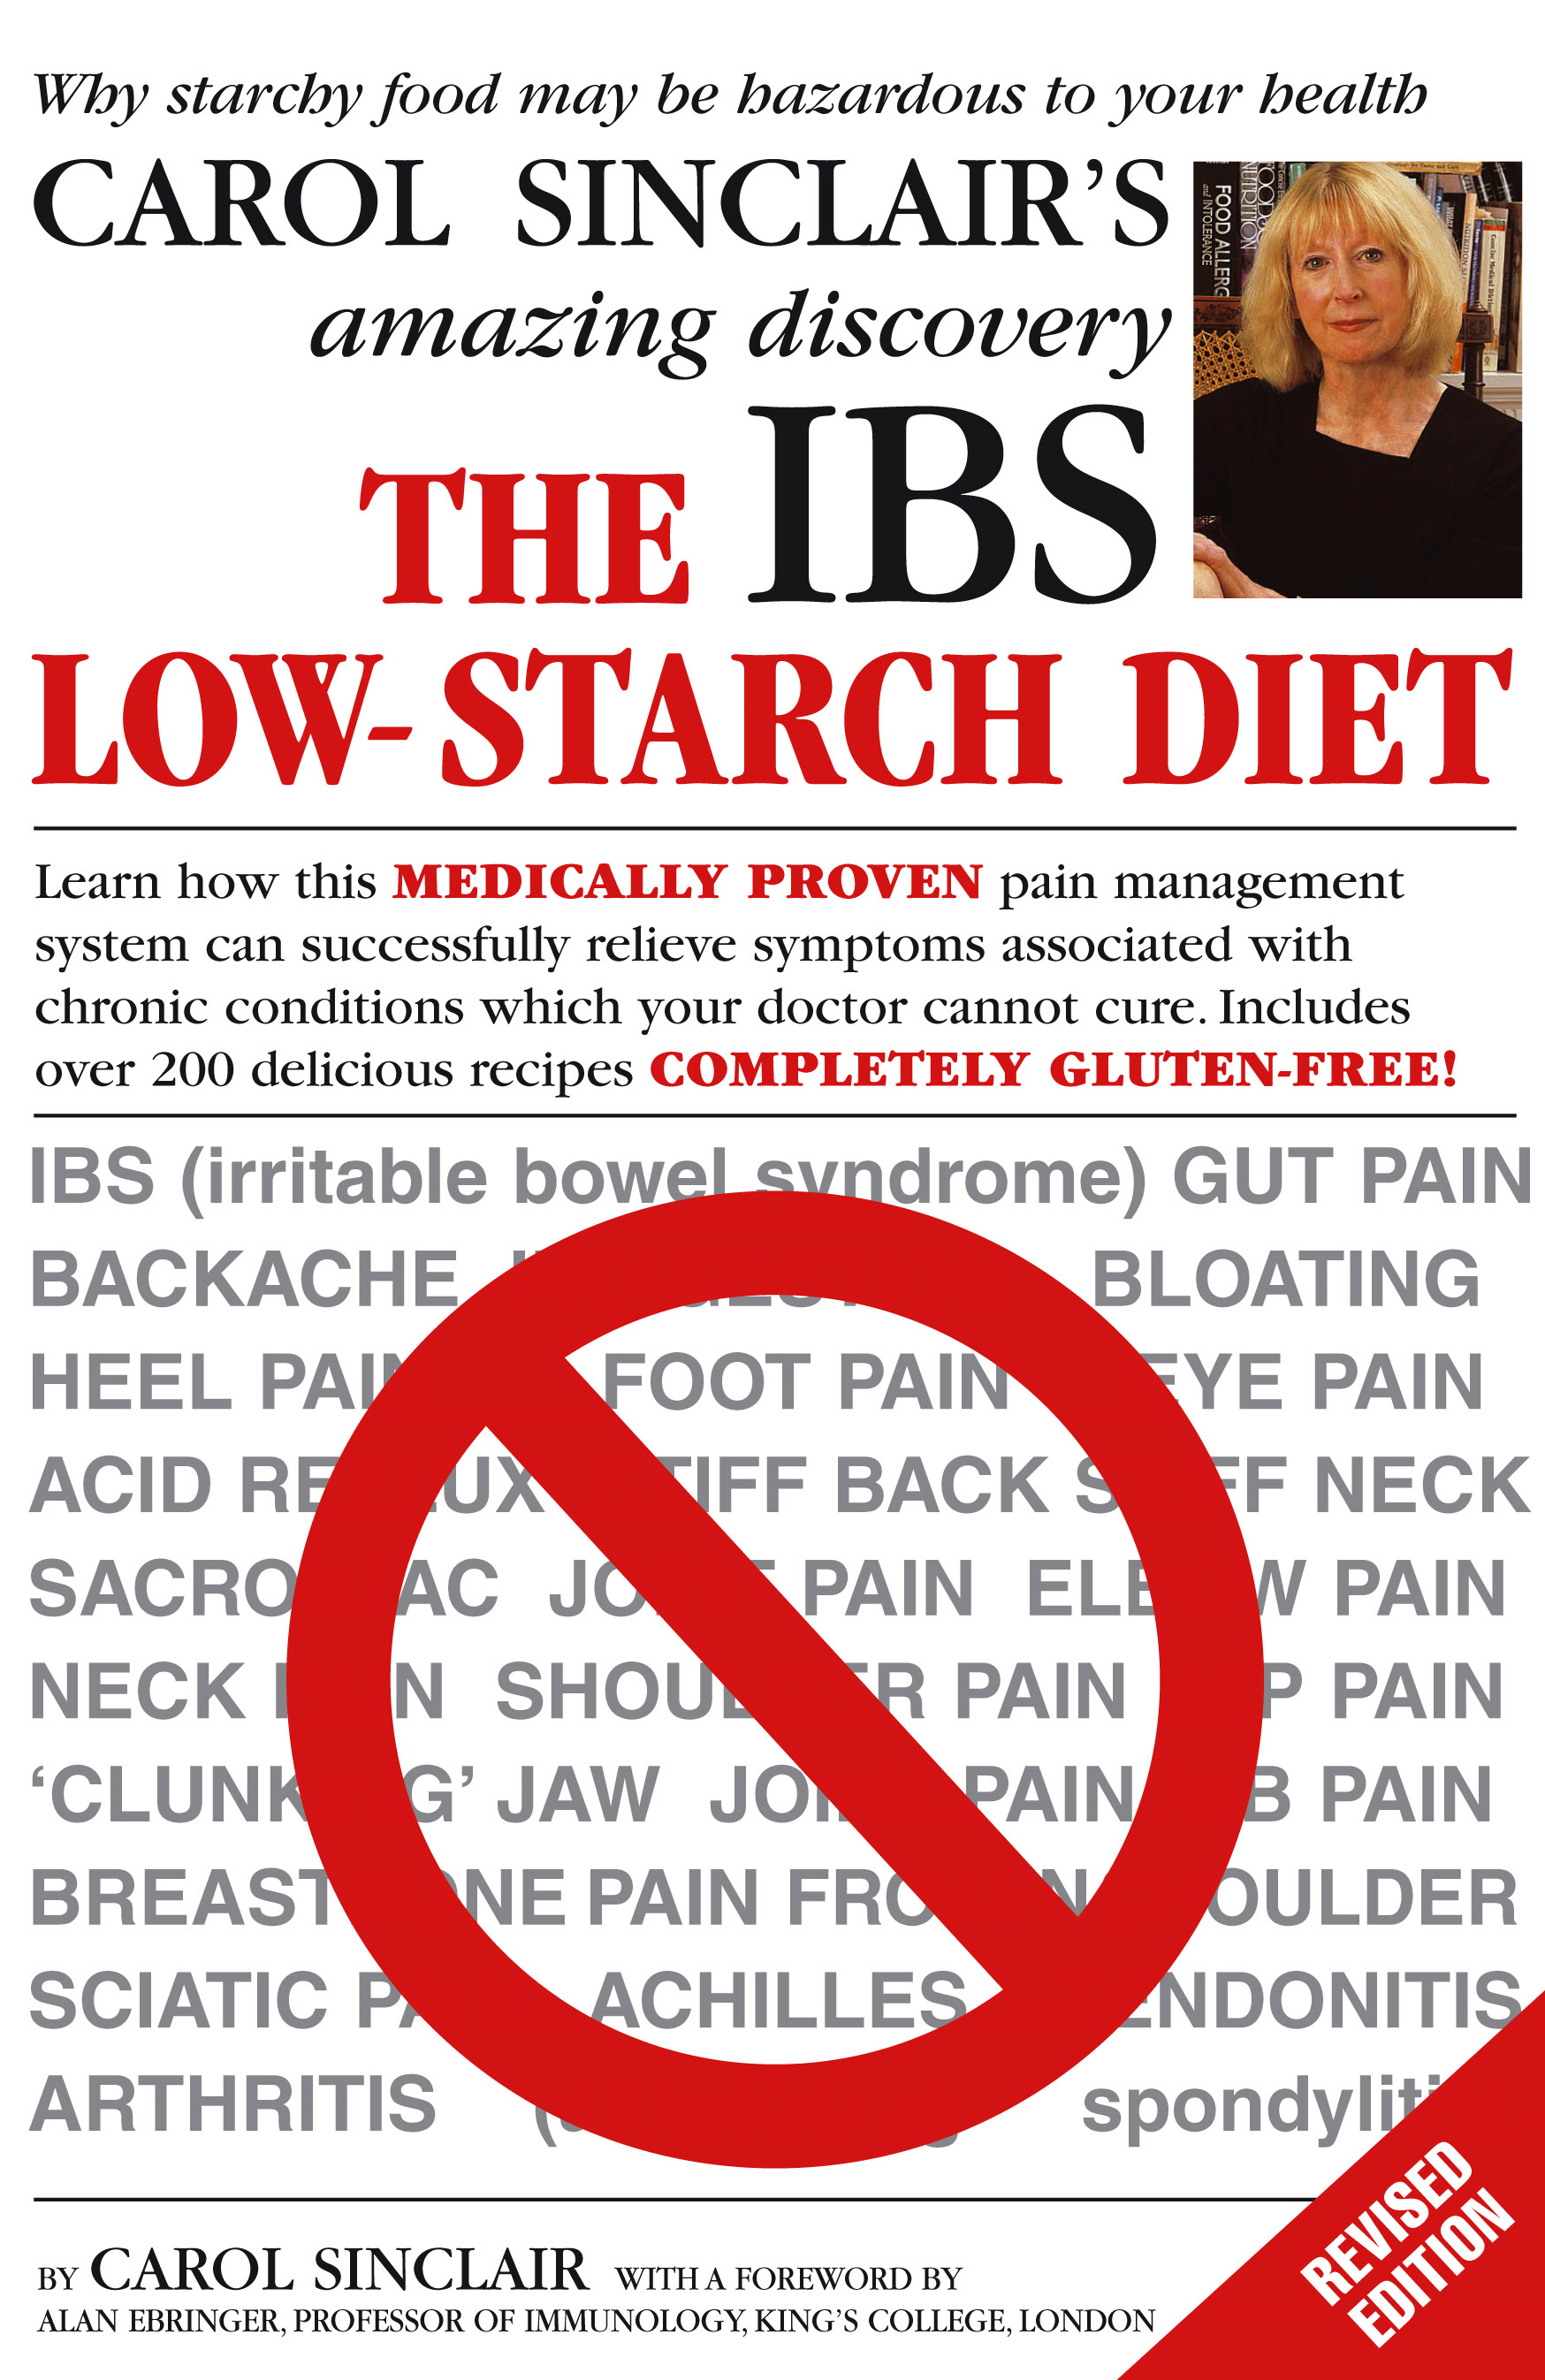 The IBS Low-Starch Diet Why starchy food may be hazardous to your health